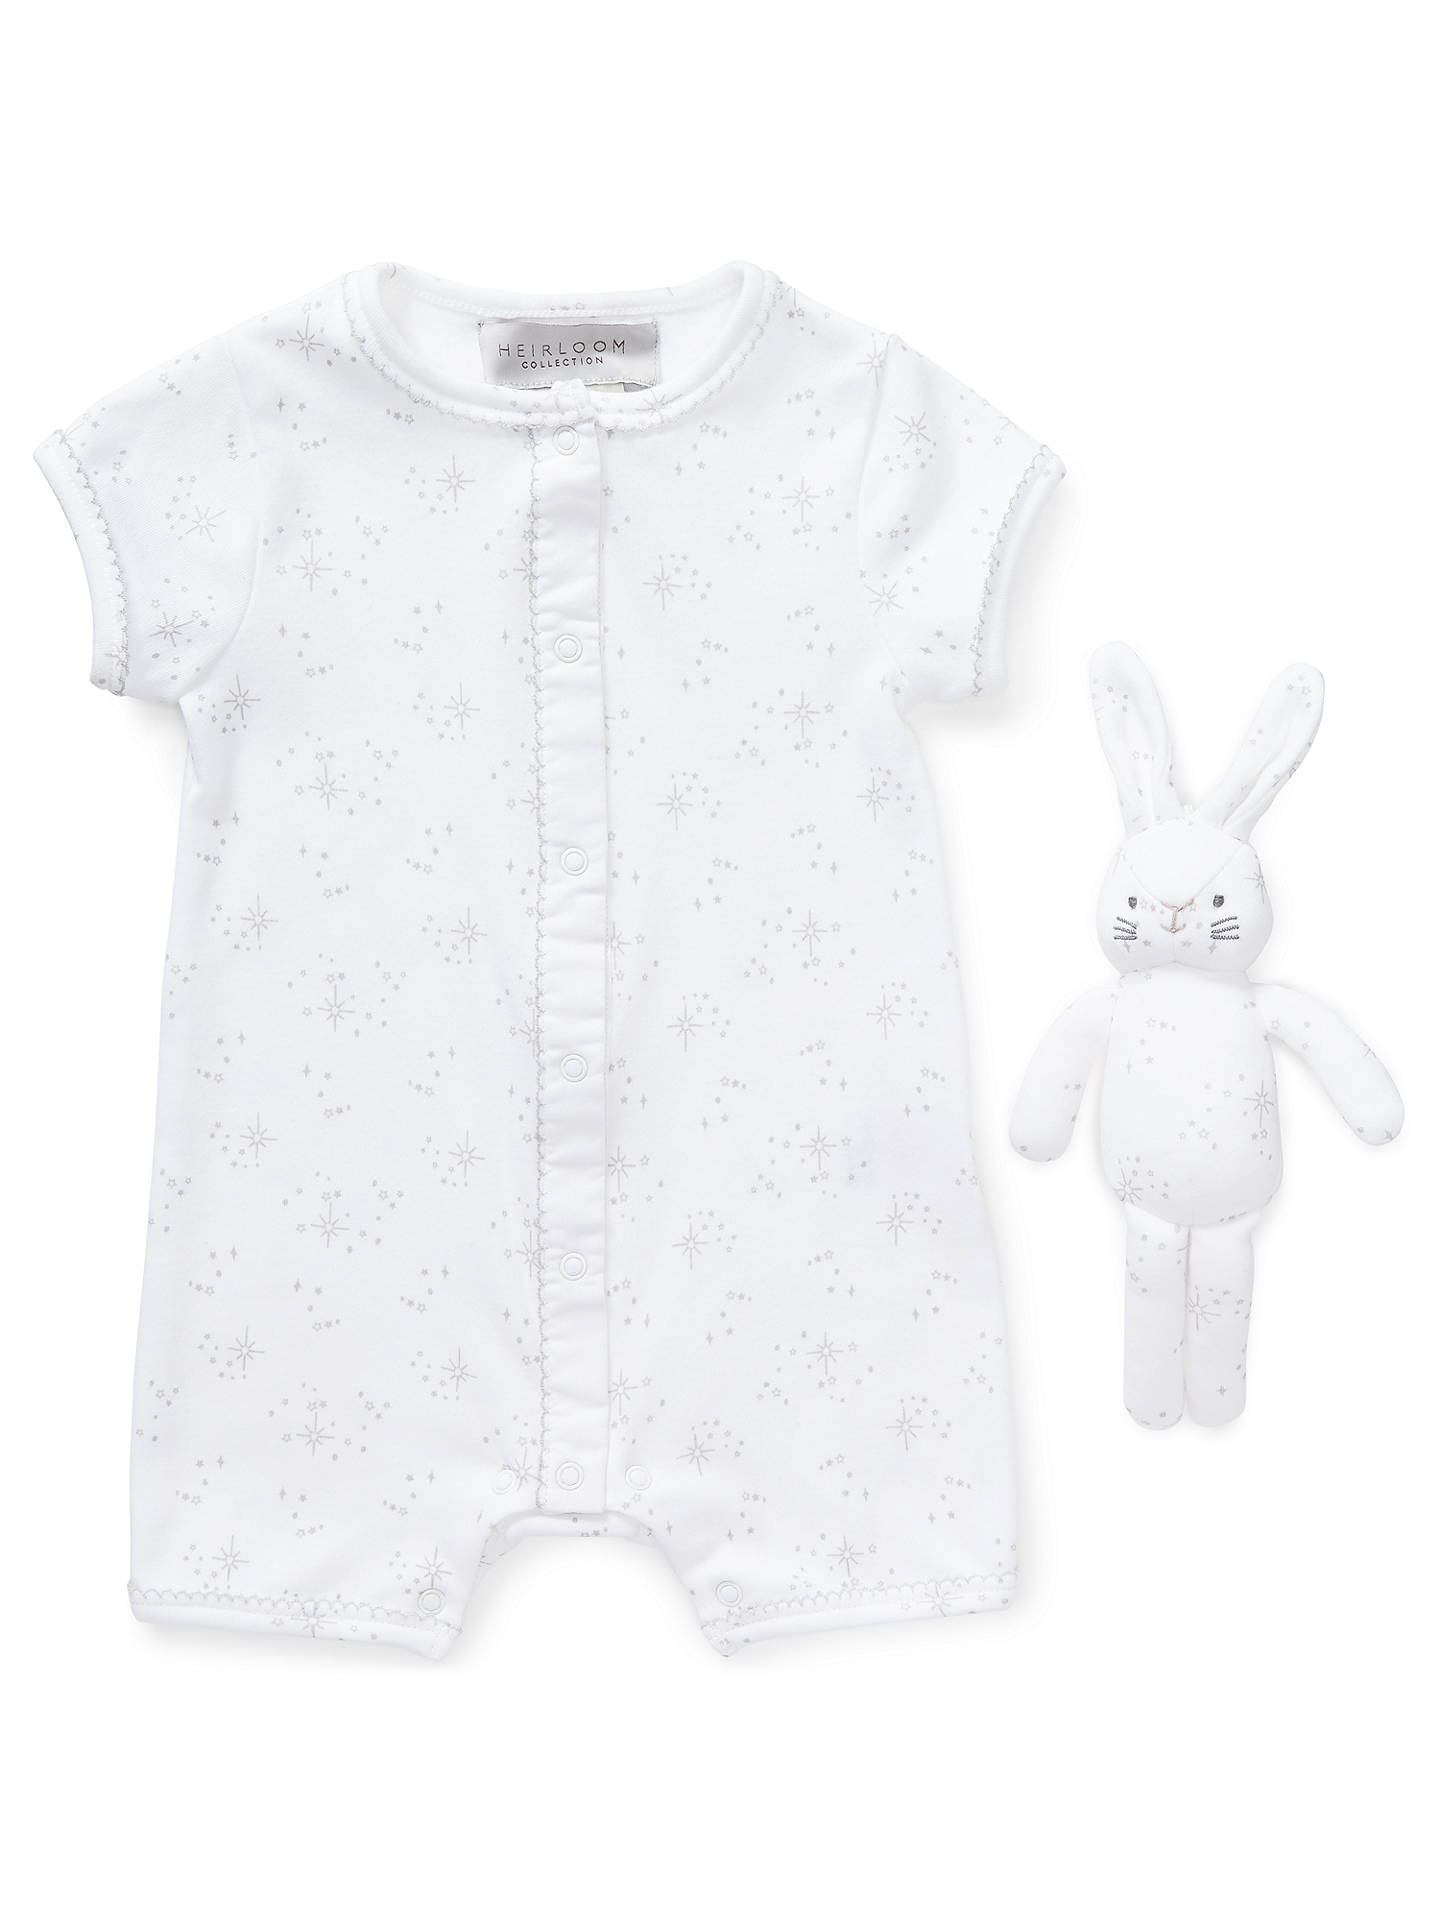 dce86e93c13 John Lewis   Partners Heirloom Collection Star Print Romper with Toy ...